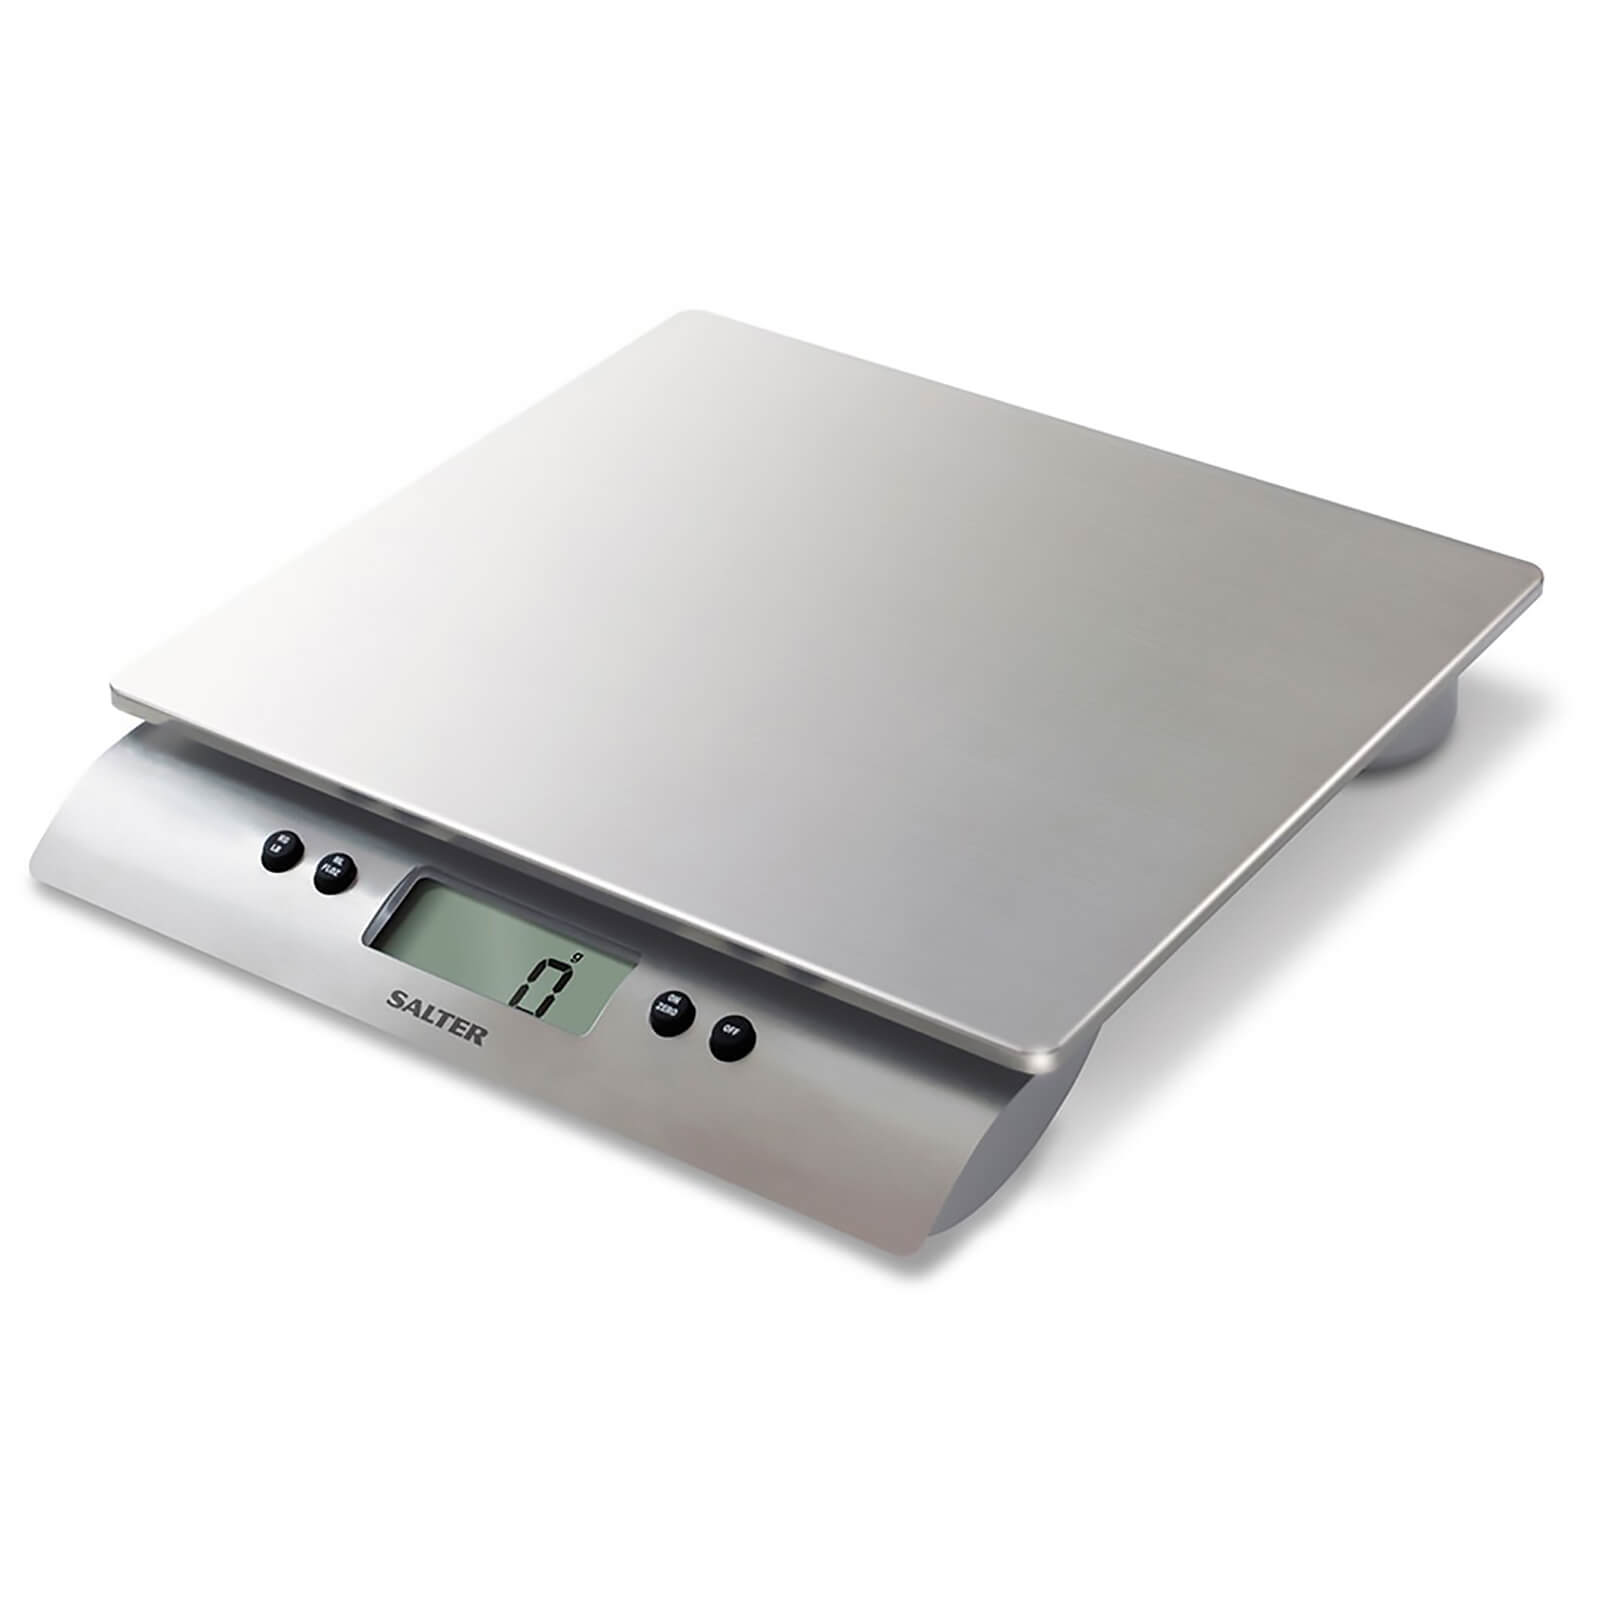 Salter Aquatronic Stainless Steel Electric Scale